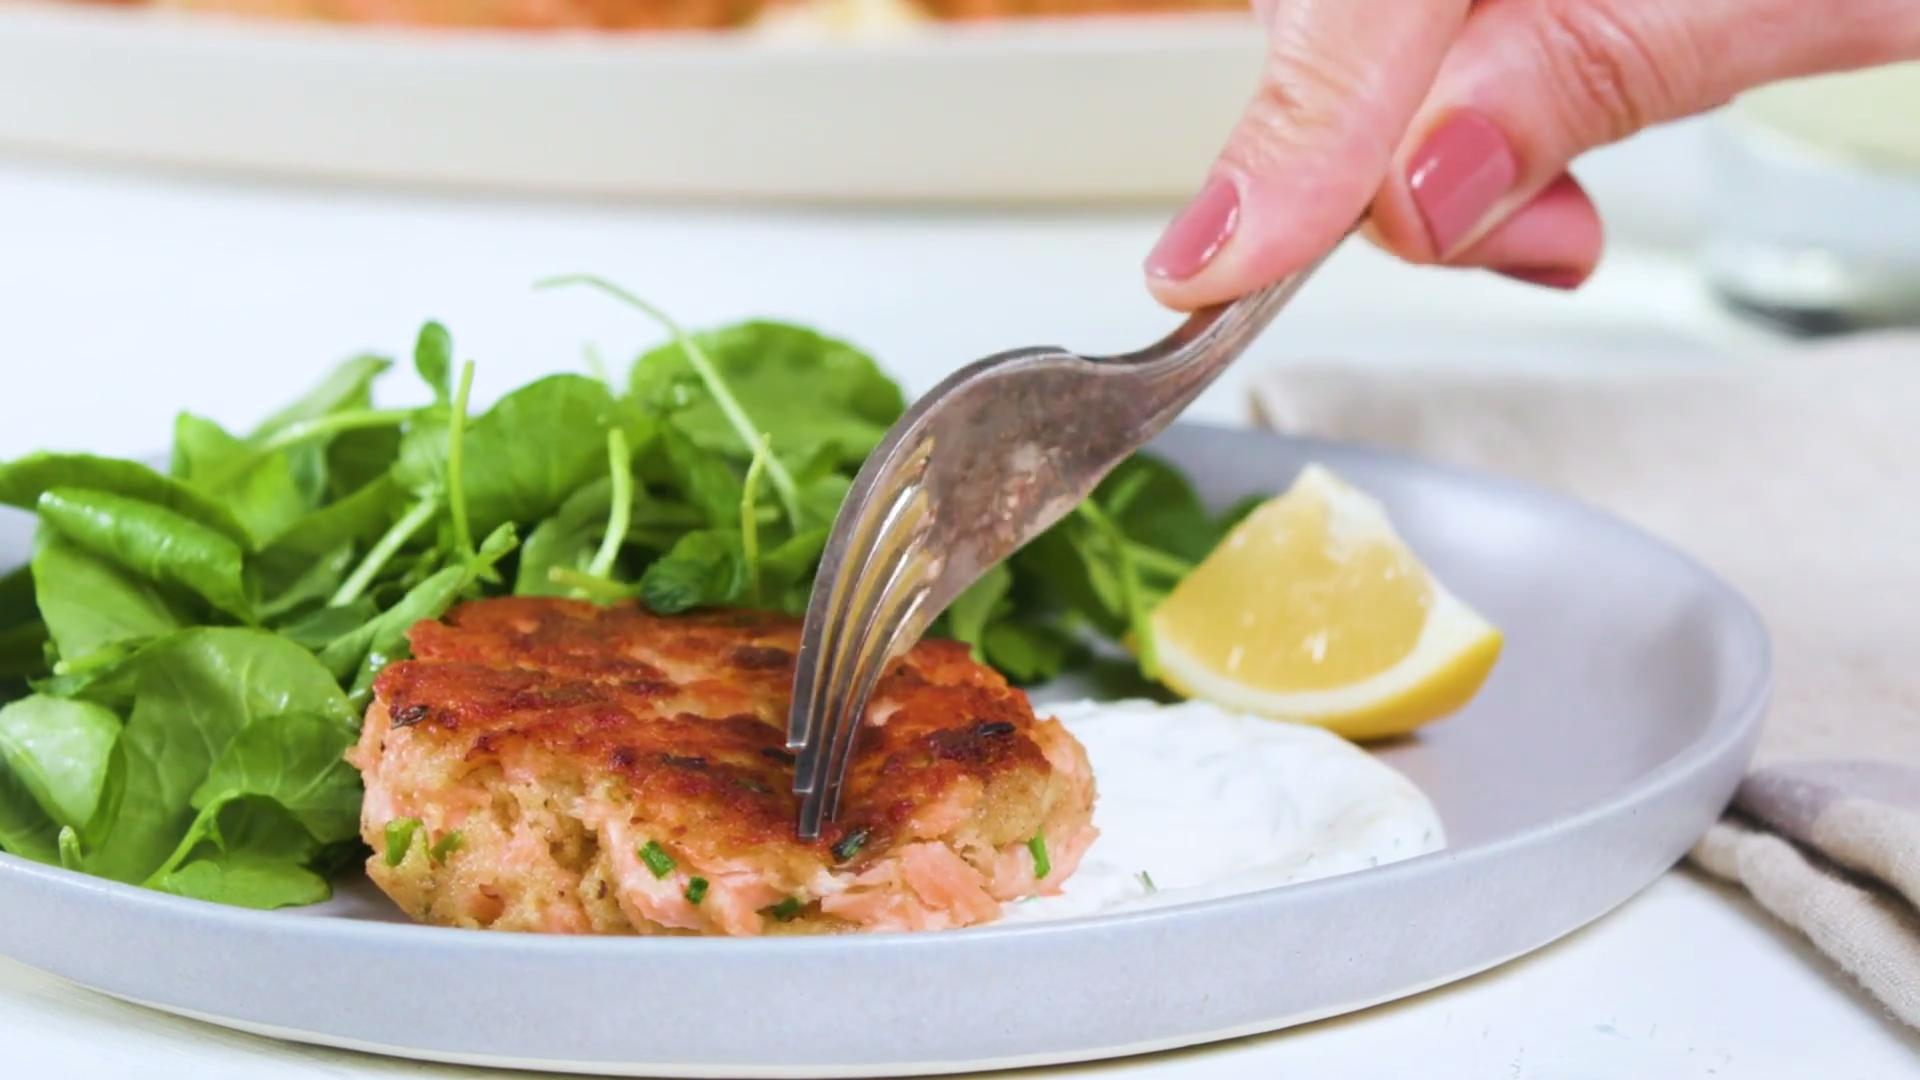 How to Make Salmon Croquettes With Yogurt